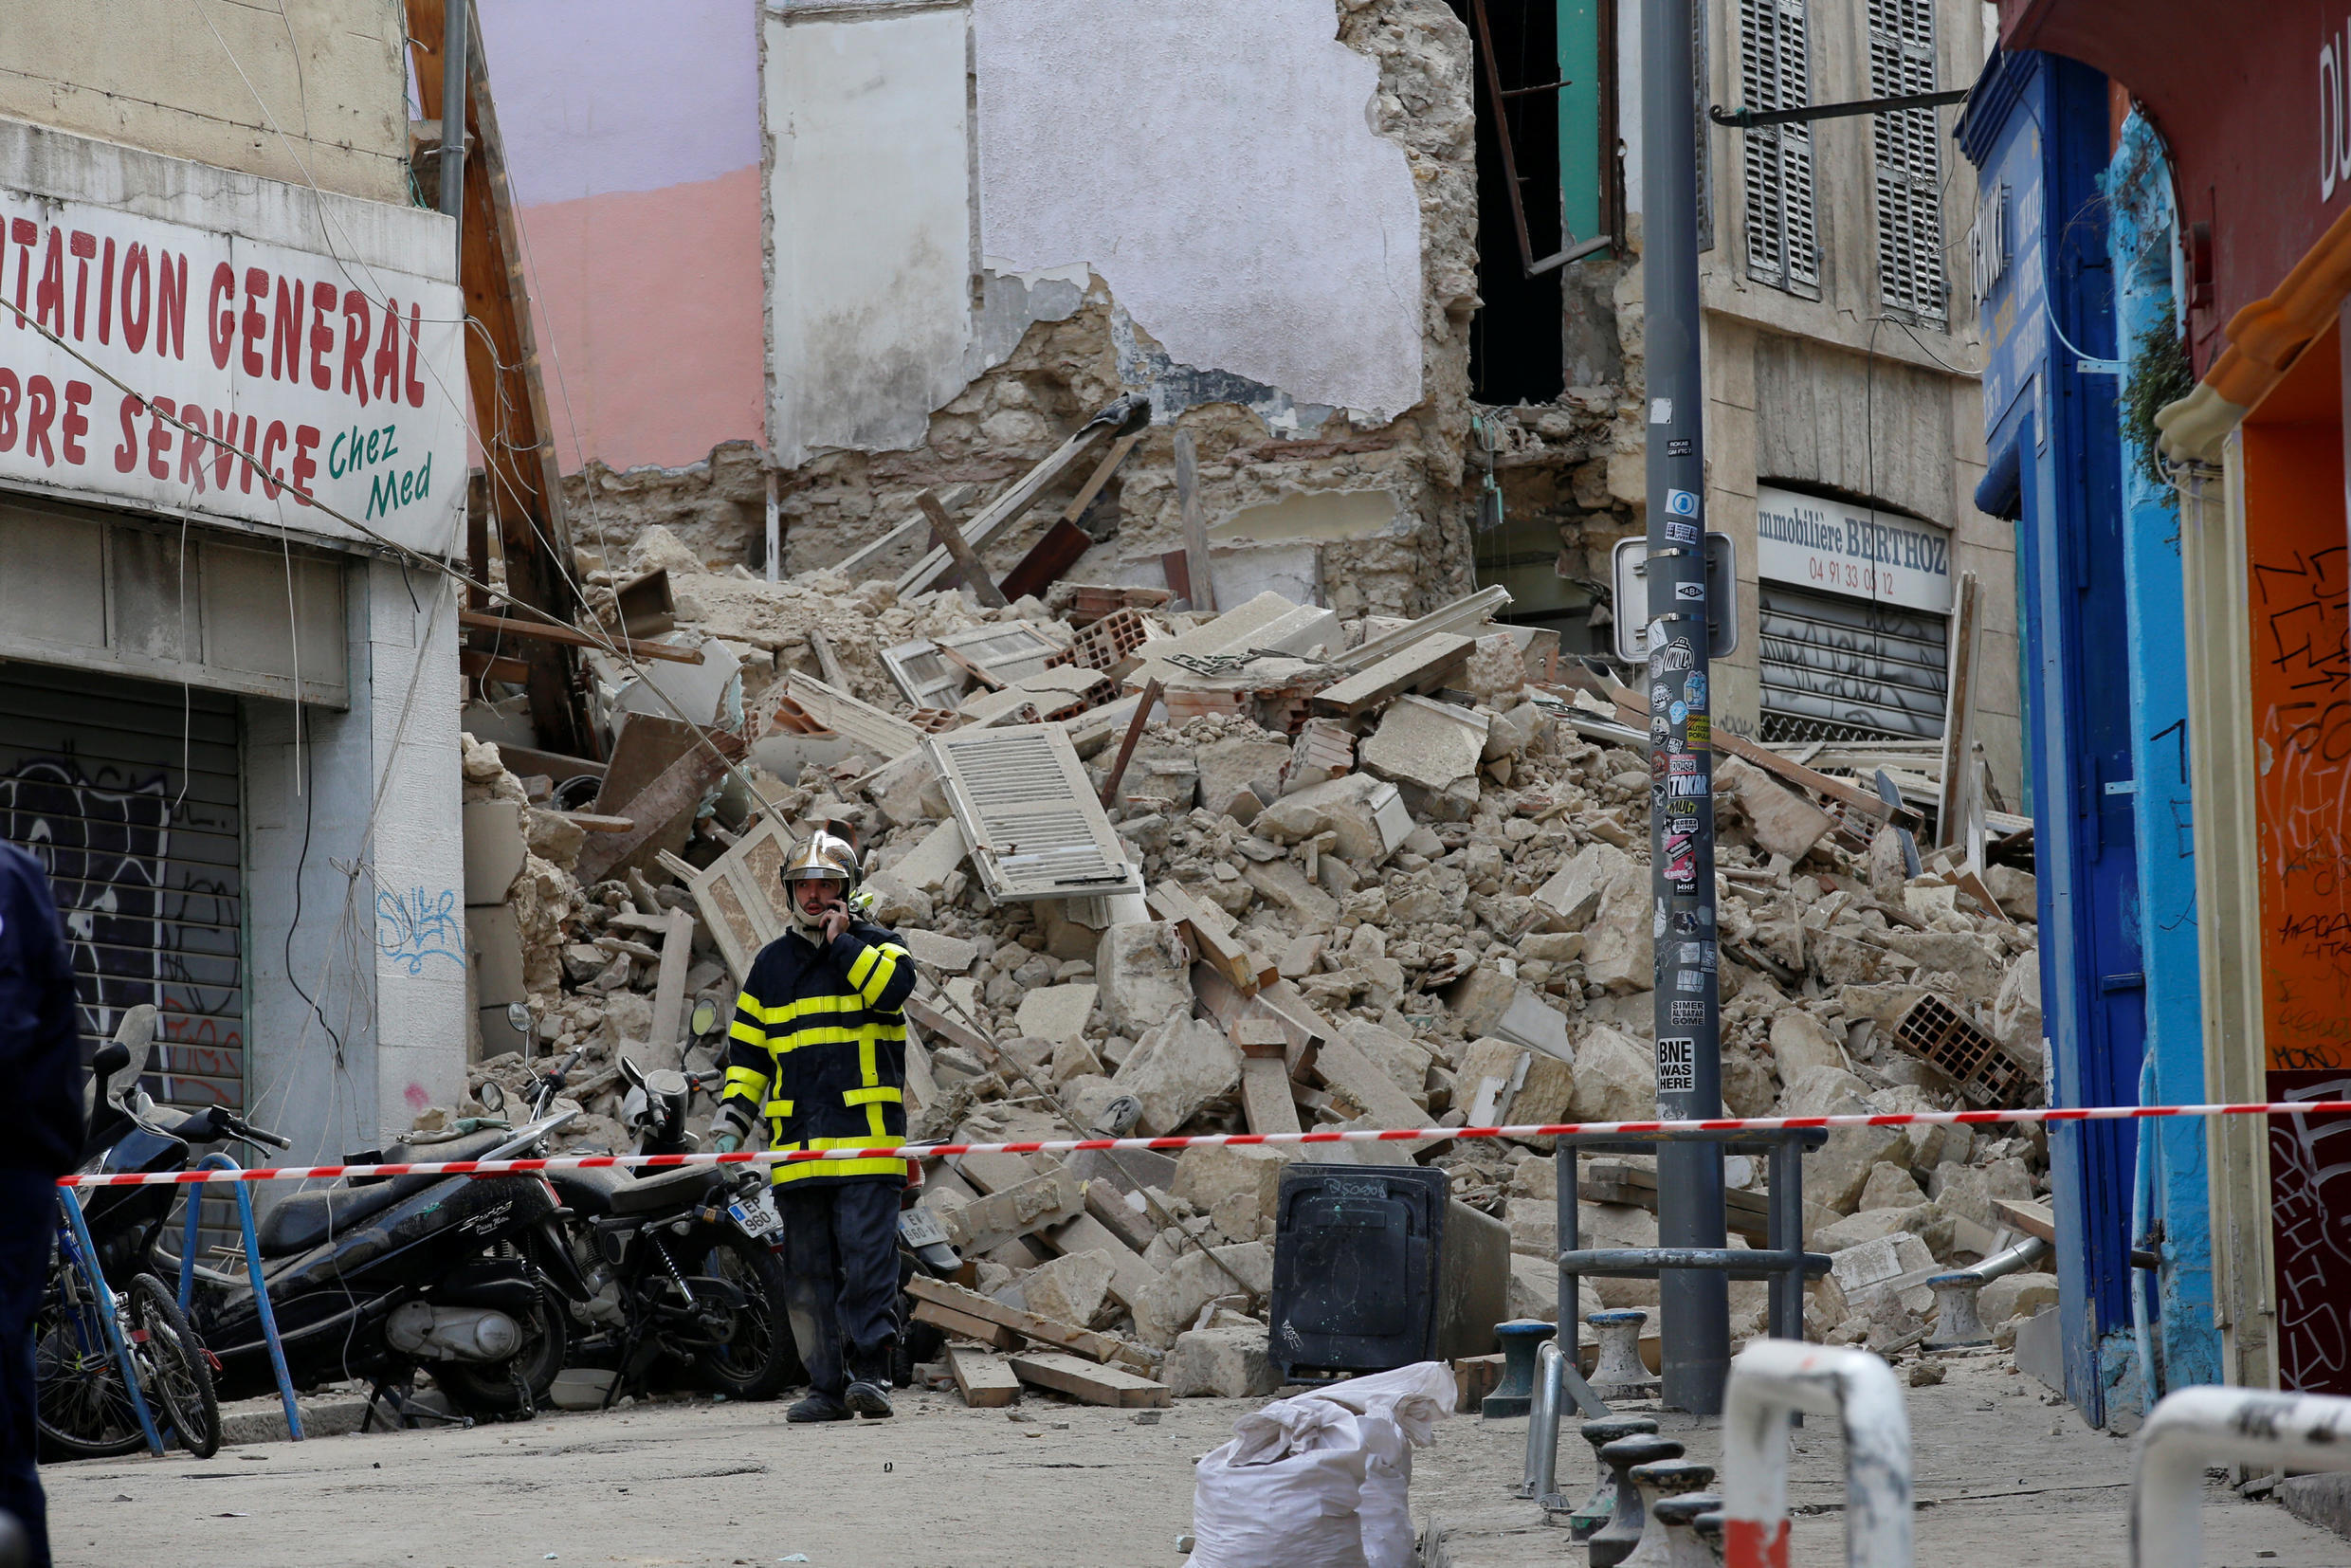 A rescue worker at the site of the building collapse in central Marseille